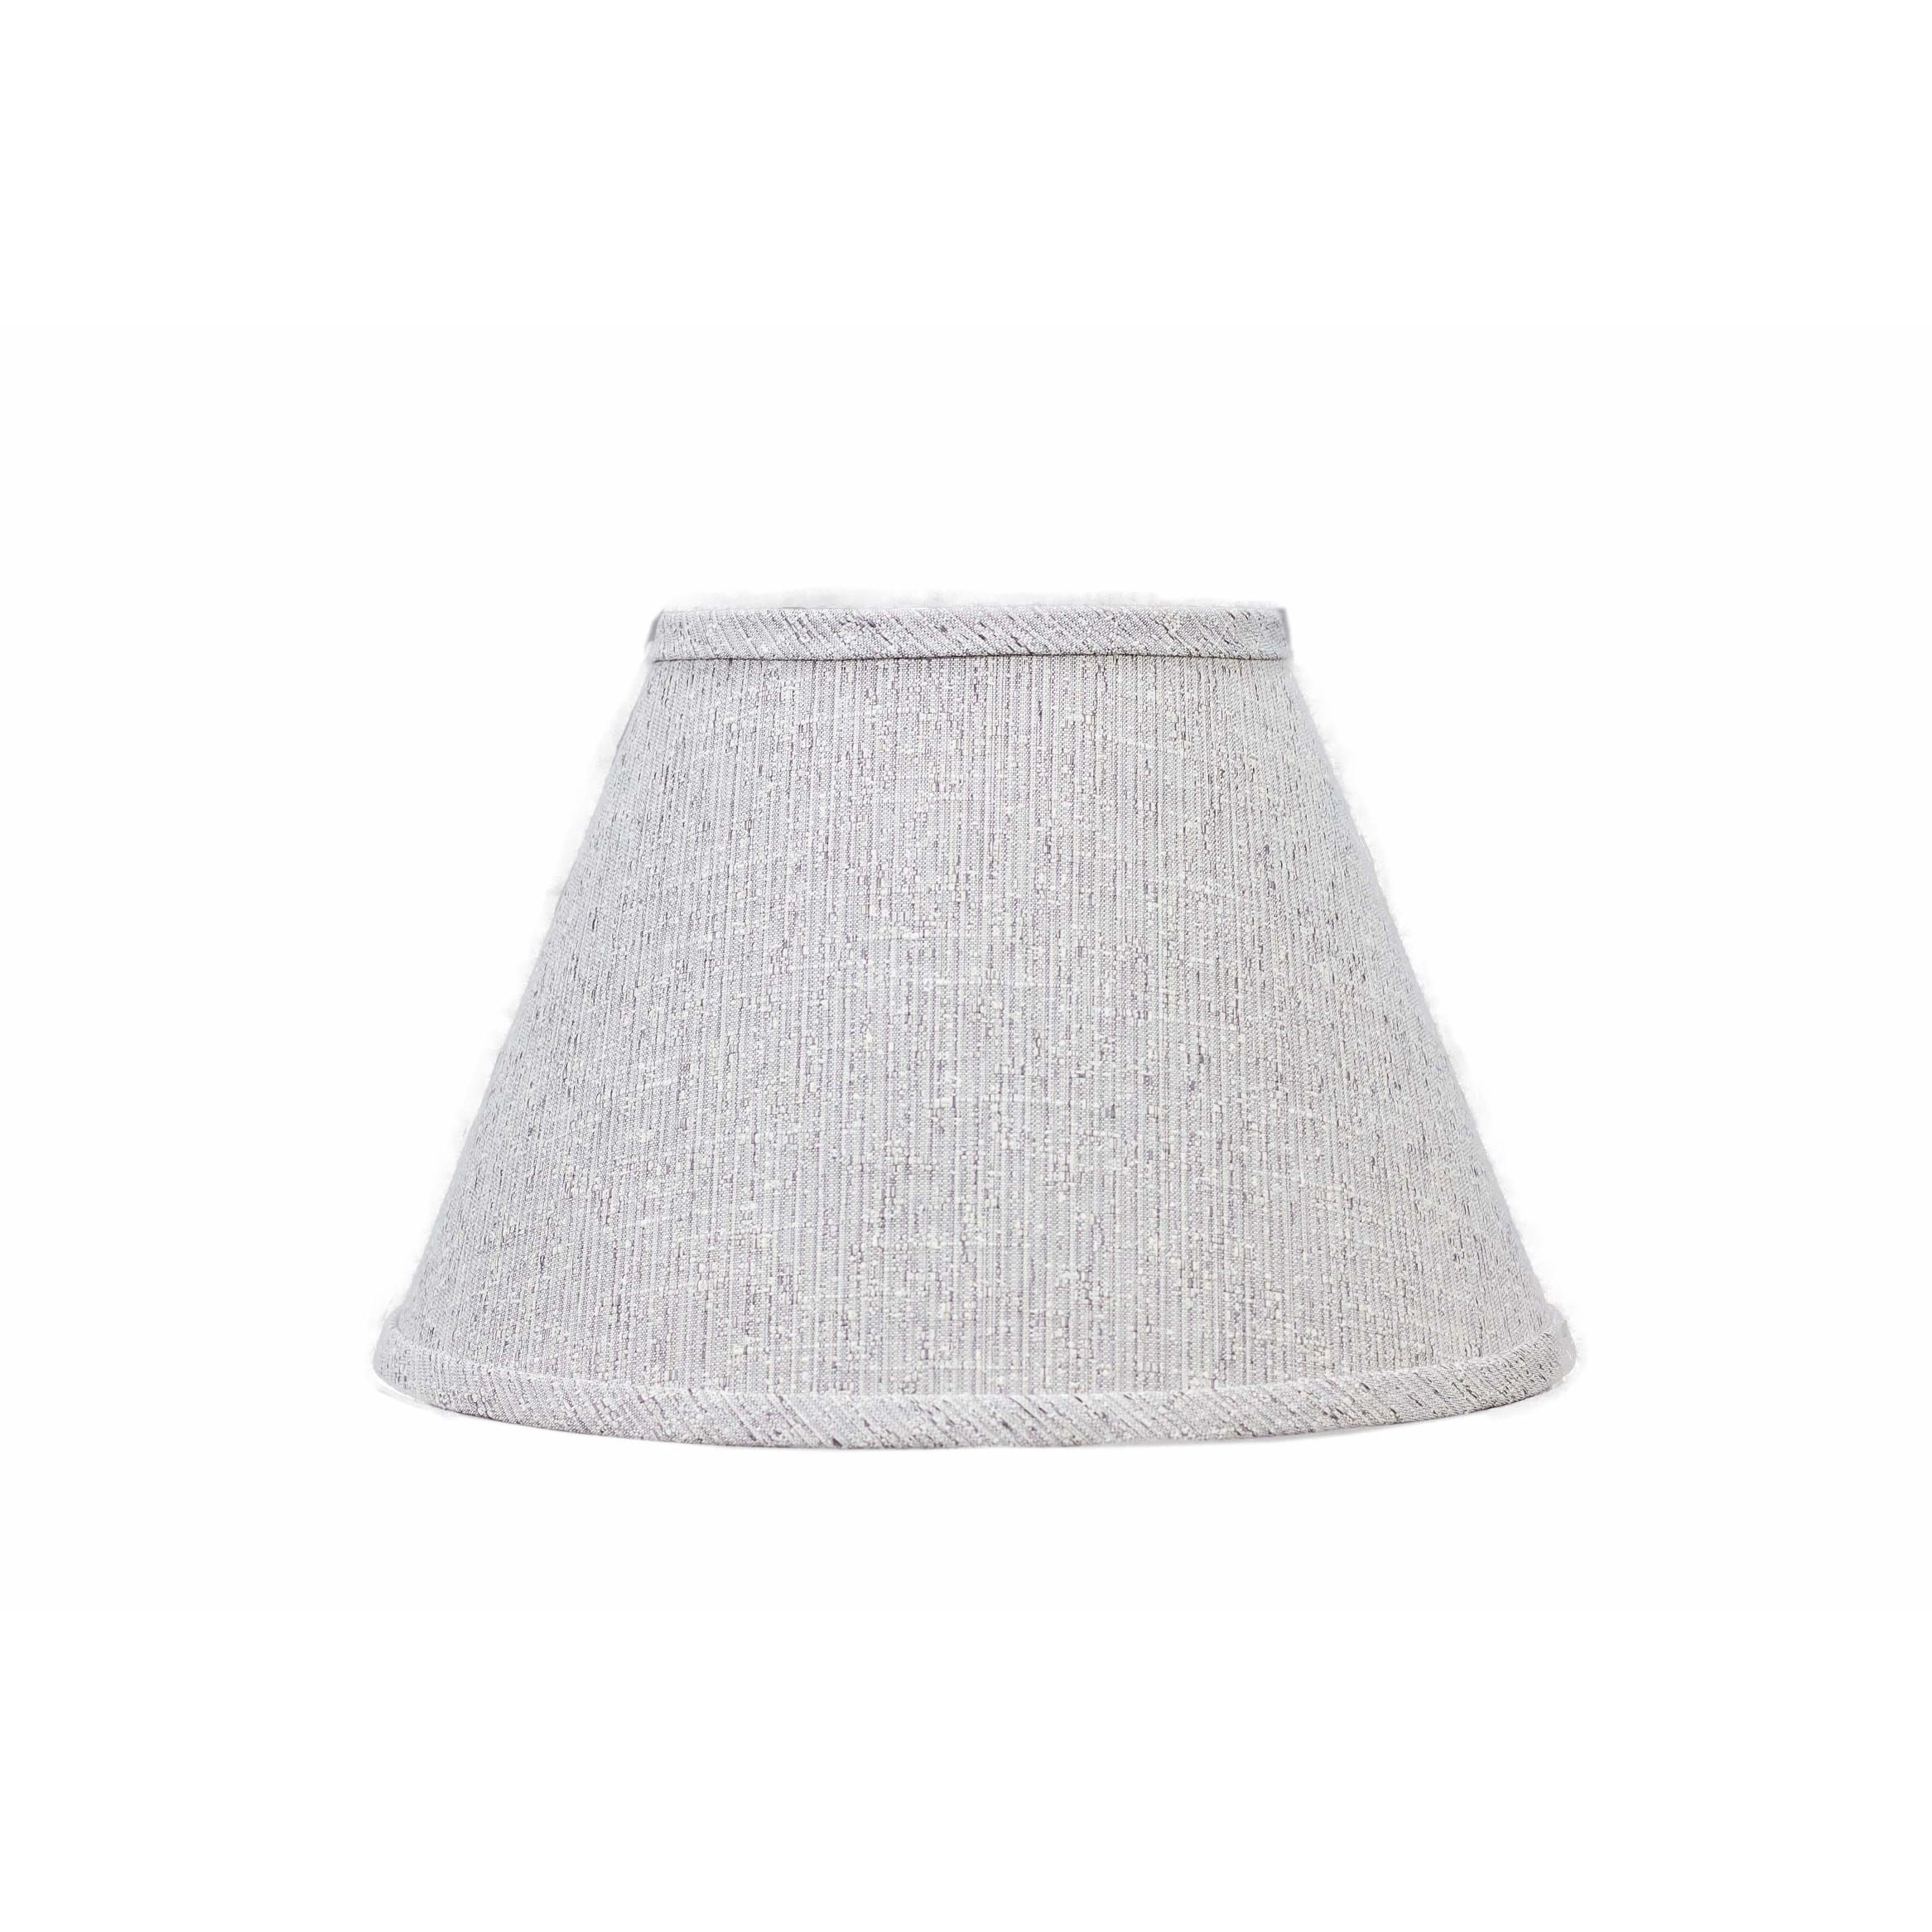 uno holder lampshades how fitter creativity shades great to from large measure lamp floor making ring shade size most fabric wall